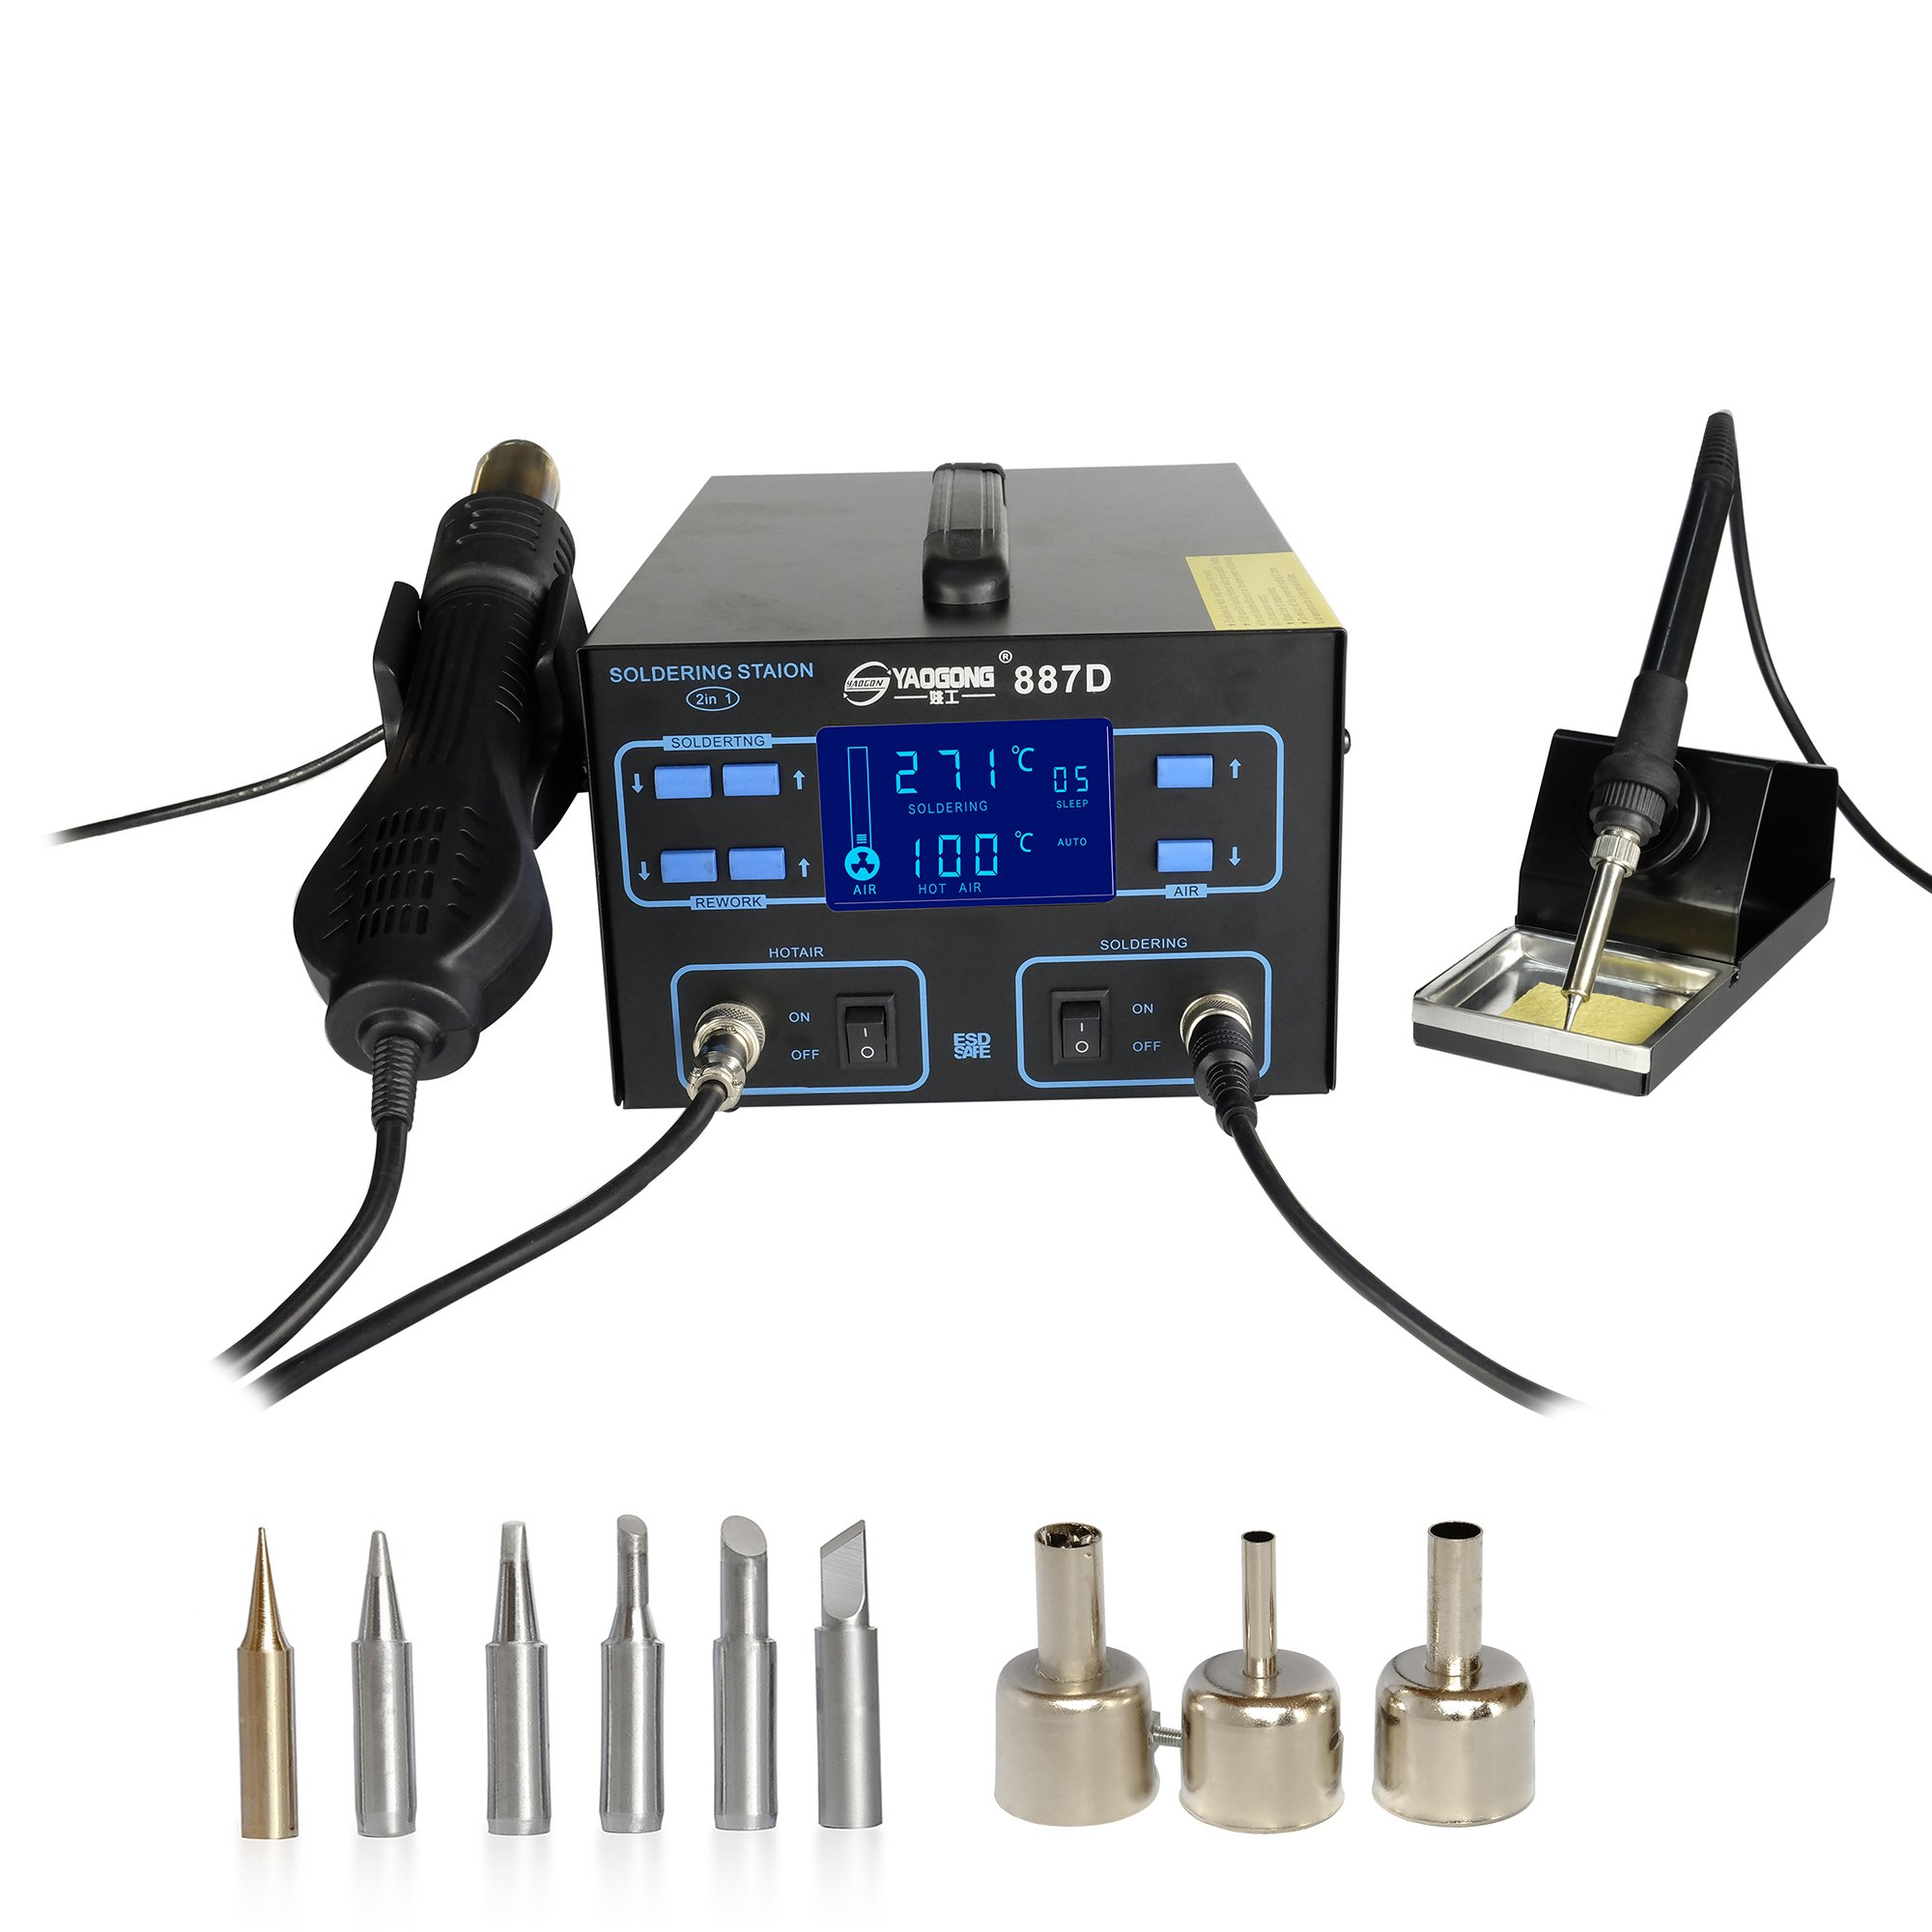 YAOGONG 887D# New Hot Air 2 IN 1 LCD Automatic Sleep Soldering Iron And Air Gun Smd Rework Station Manual/Automatic Exchange With 6 Pieces Iron Tips(Warranty) by YAOGONG (Image #1)